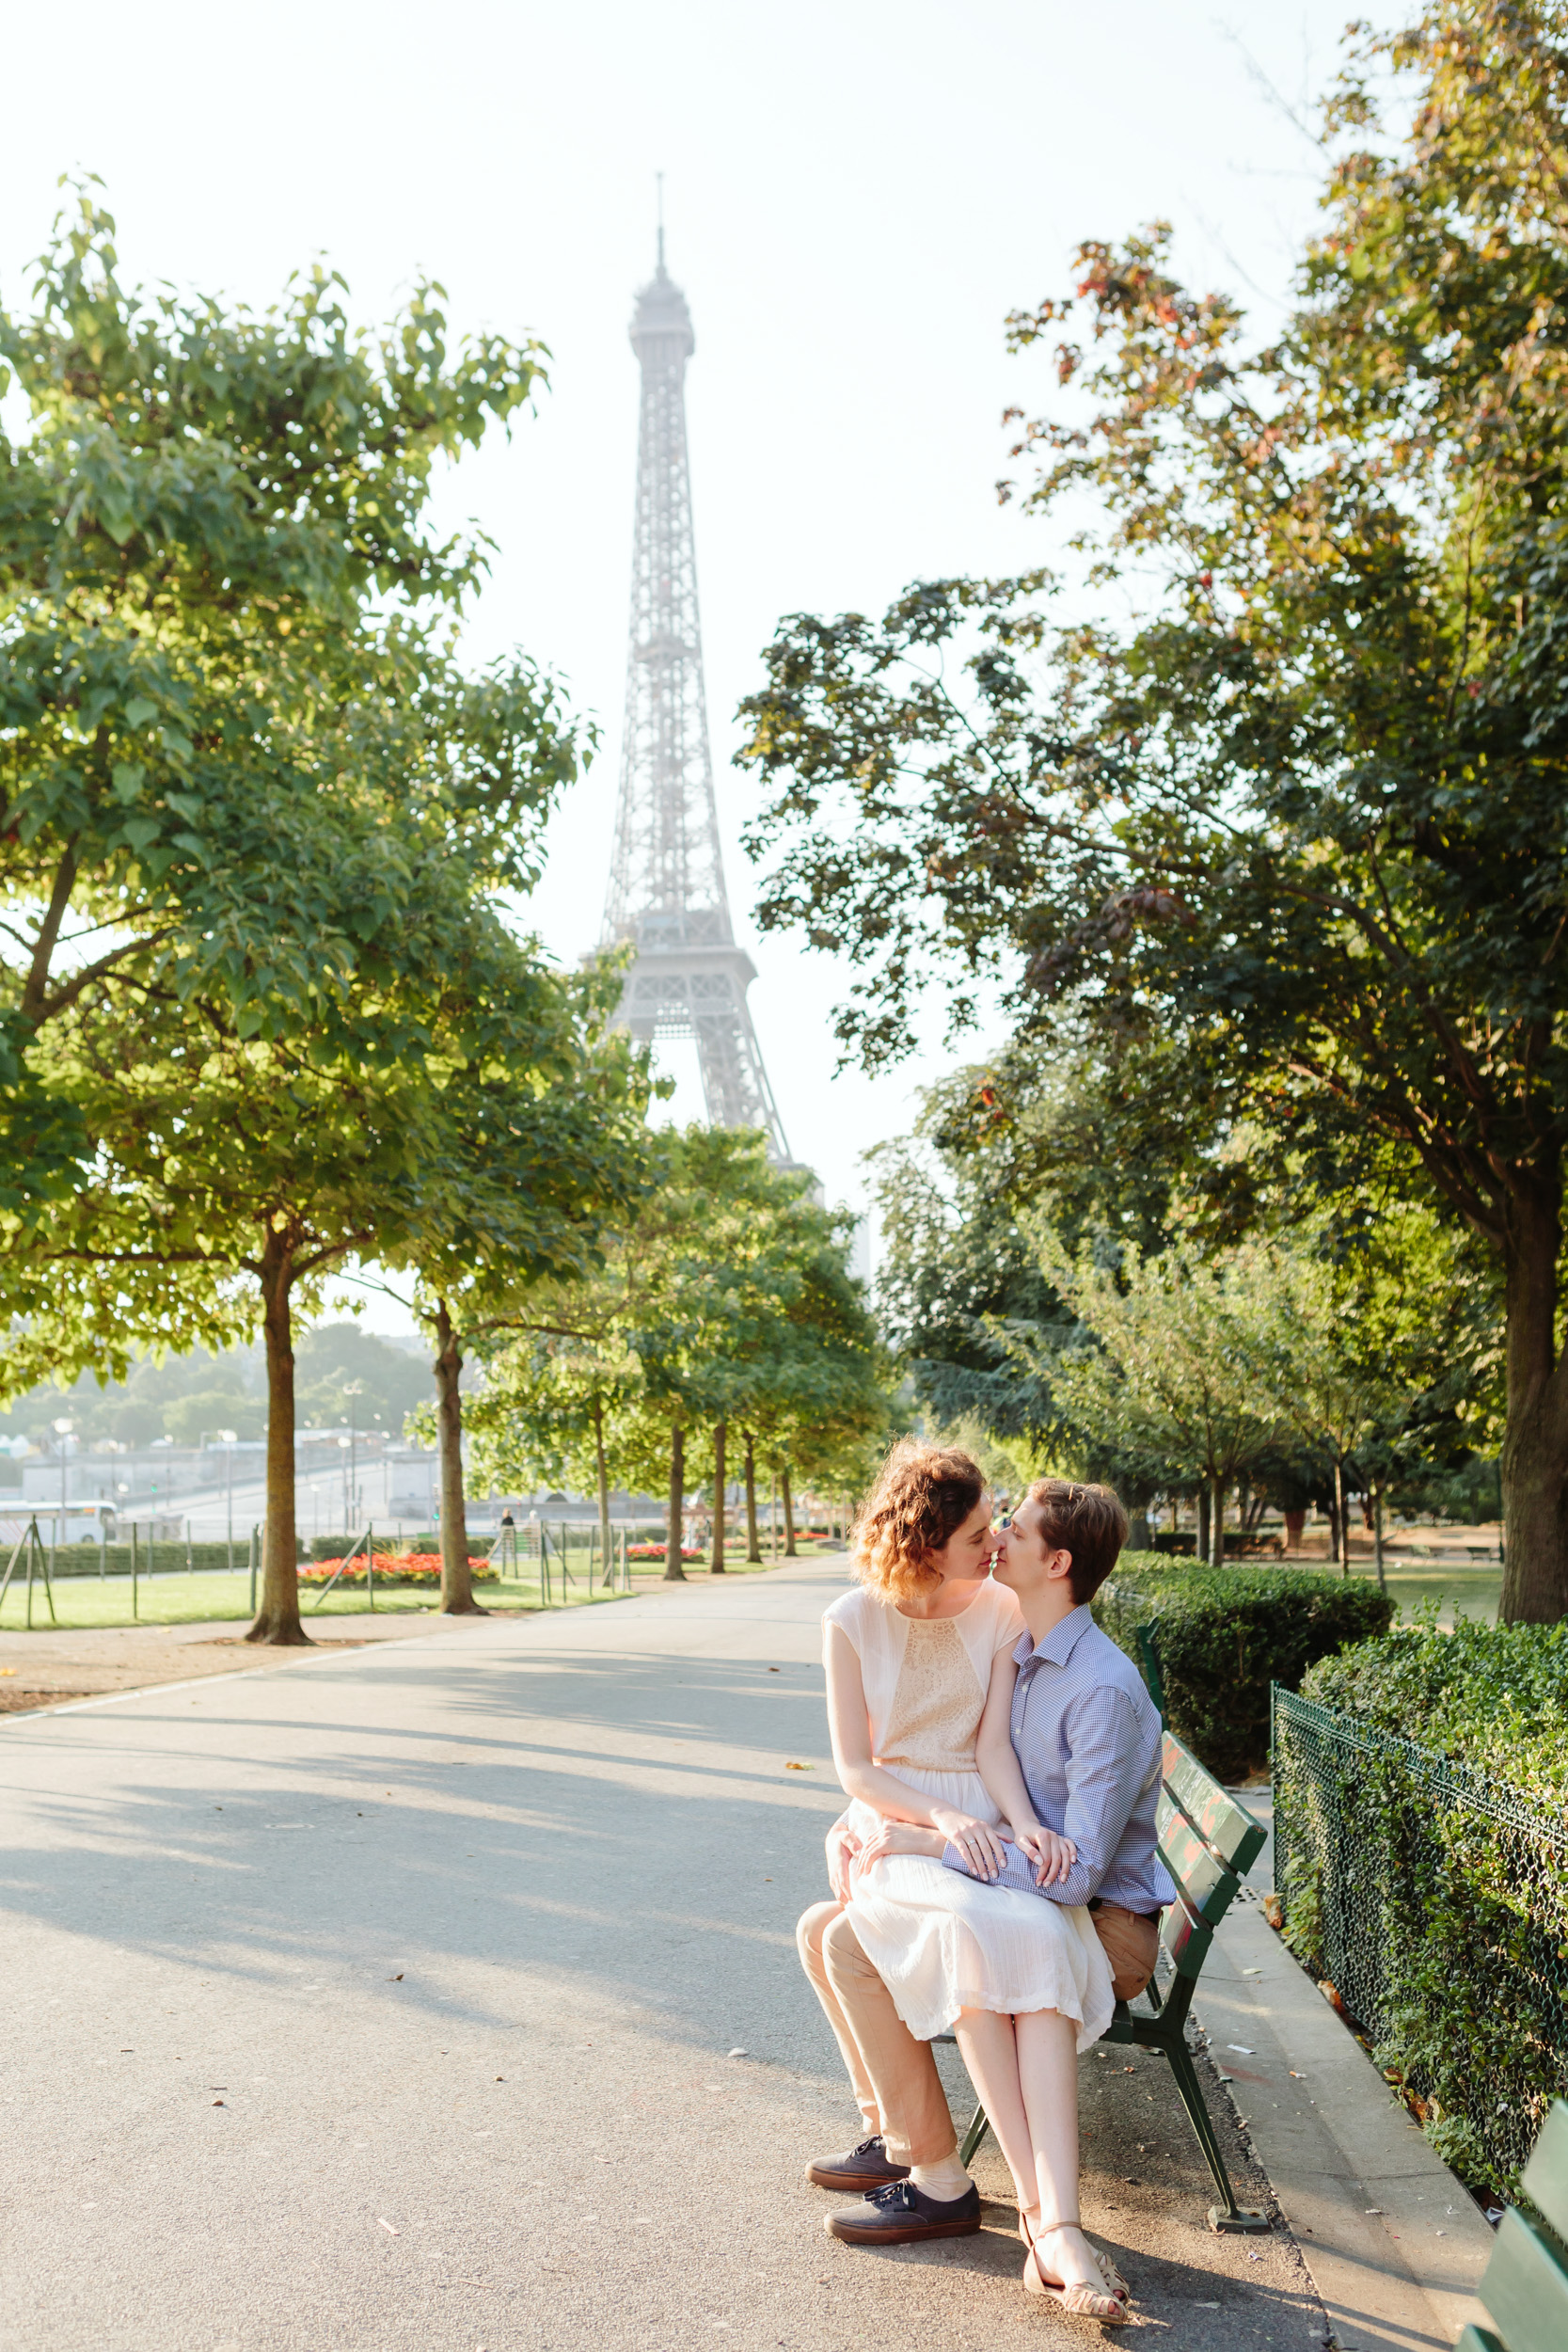 Couple sitting on a bench and kissing at Trocadero by the Eiffel Tower at sunrise captured by Paris Photographer Federico Guendel IheartParisFr